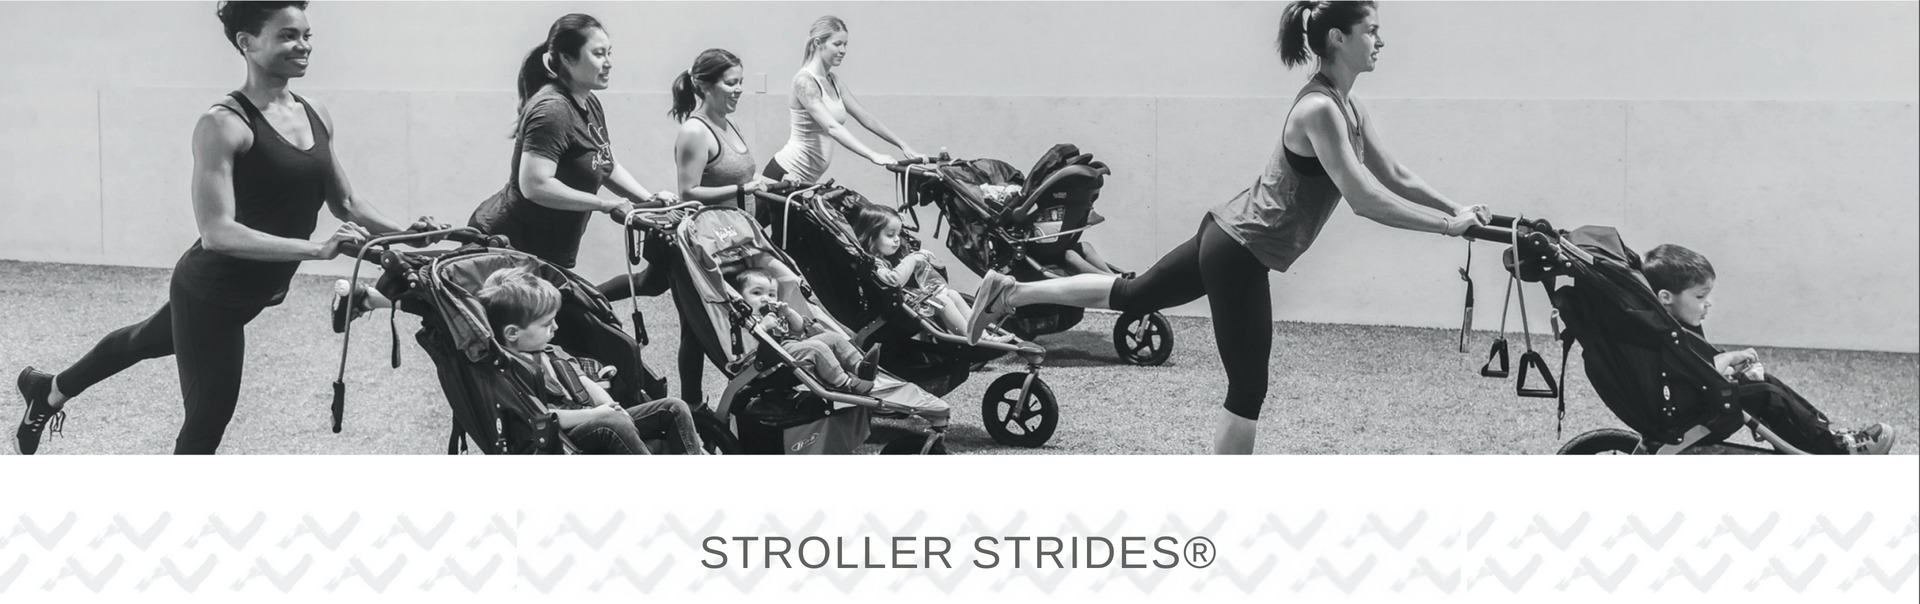 NEW Stroller Strides Header.jpg